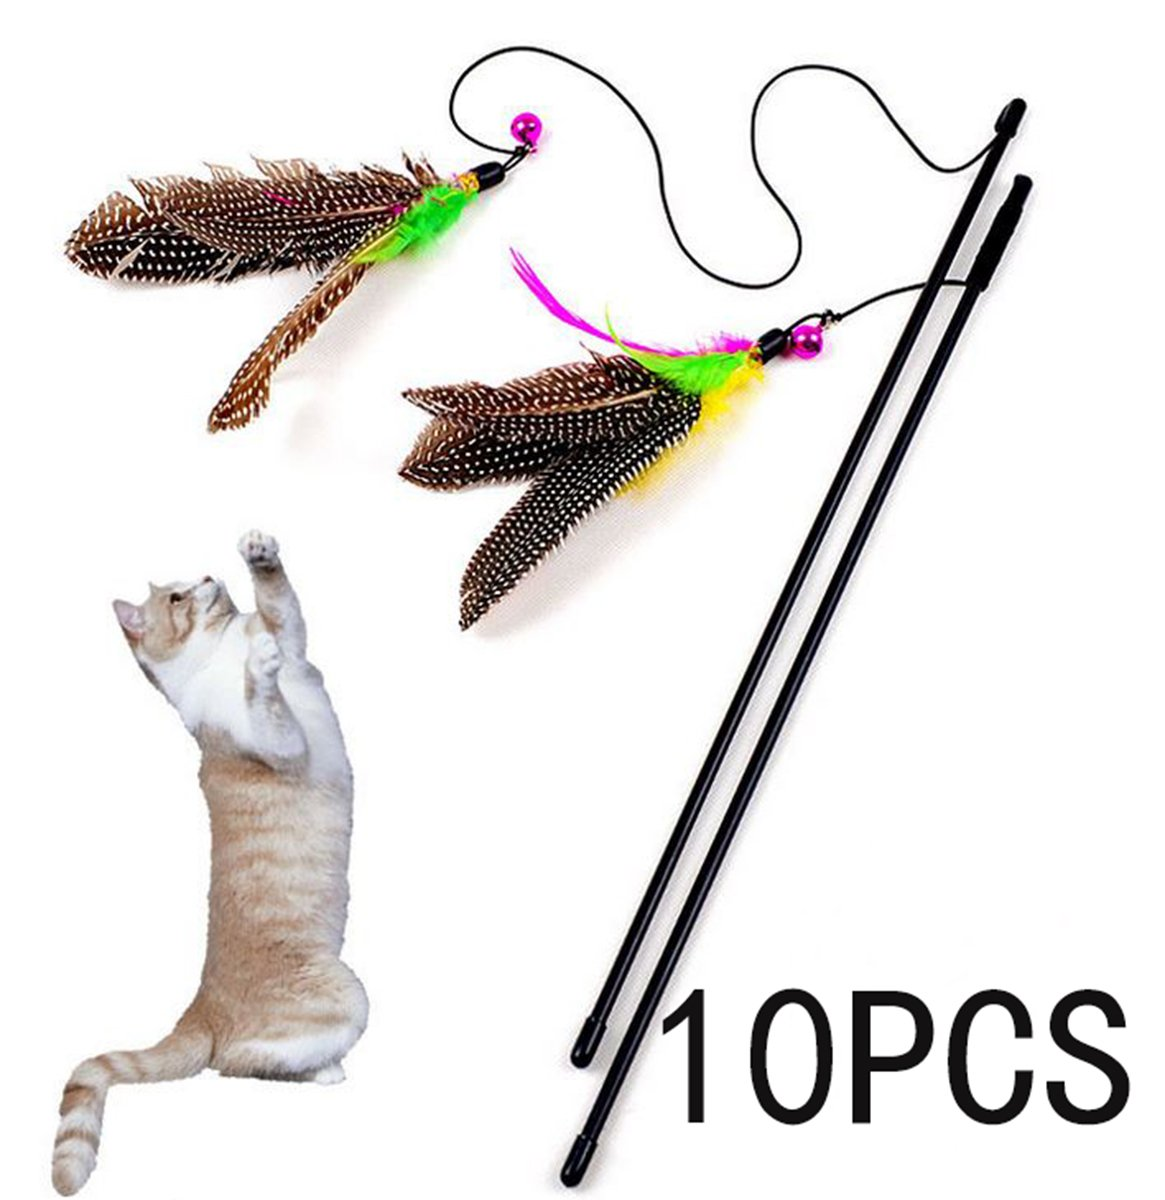 10 PCS Flying Feather Cat Teaser Toys Kitten Cat Interactive Toy Plastic Rod with Bell and Feather (Feather Toy with Wire) ZD